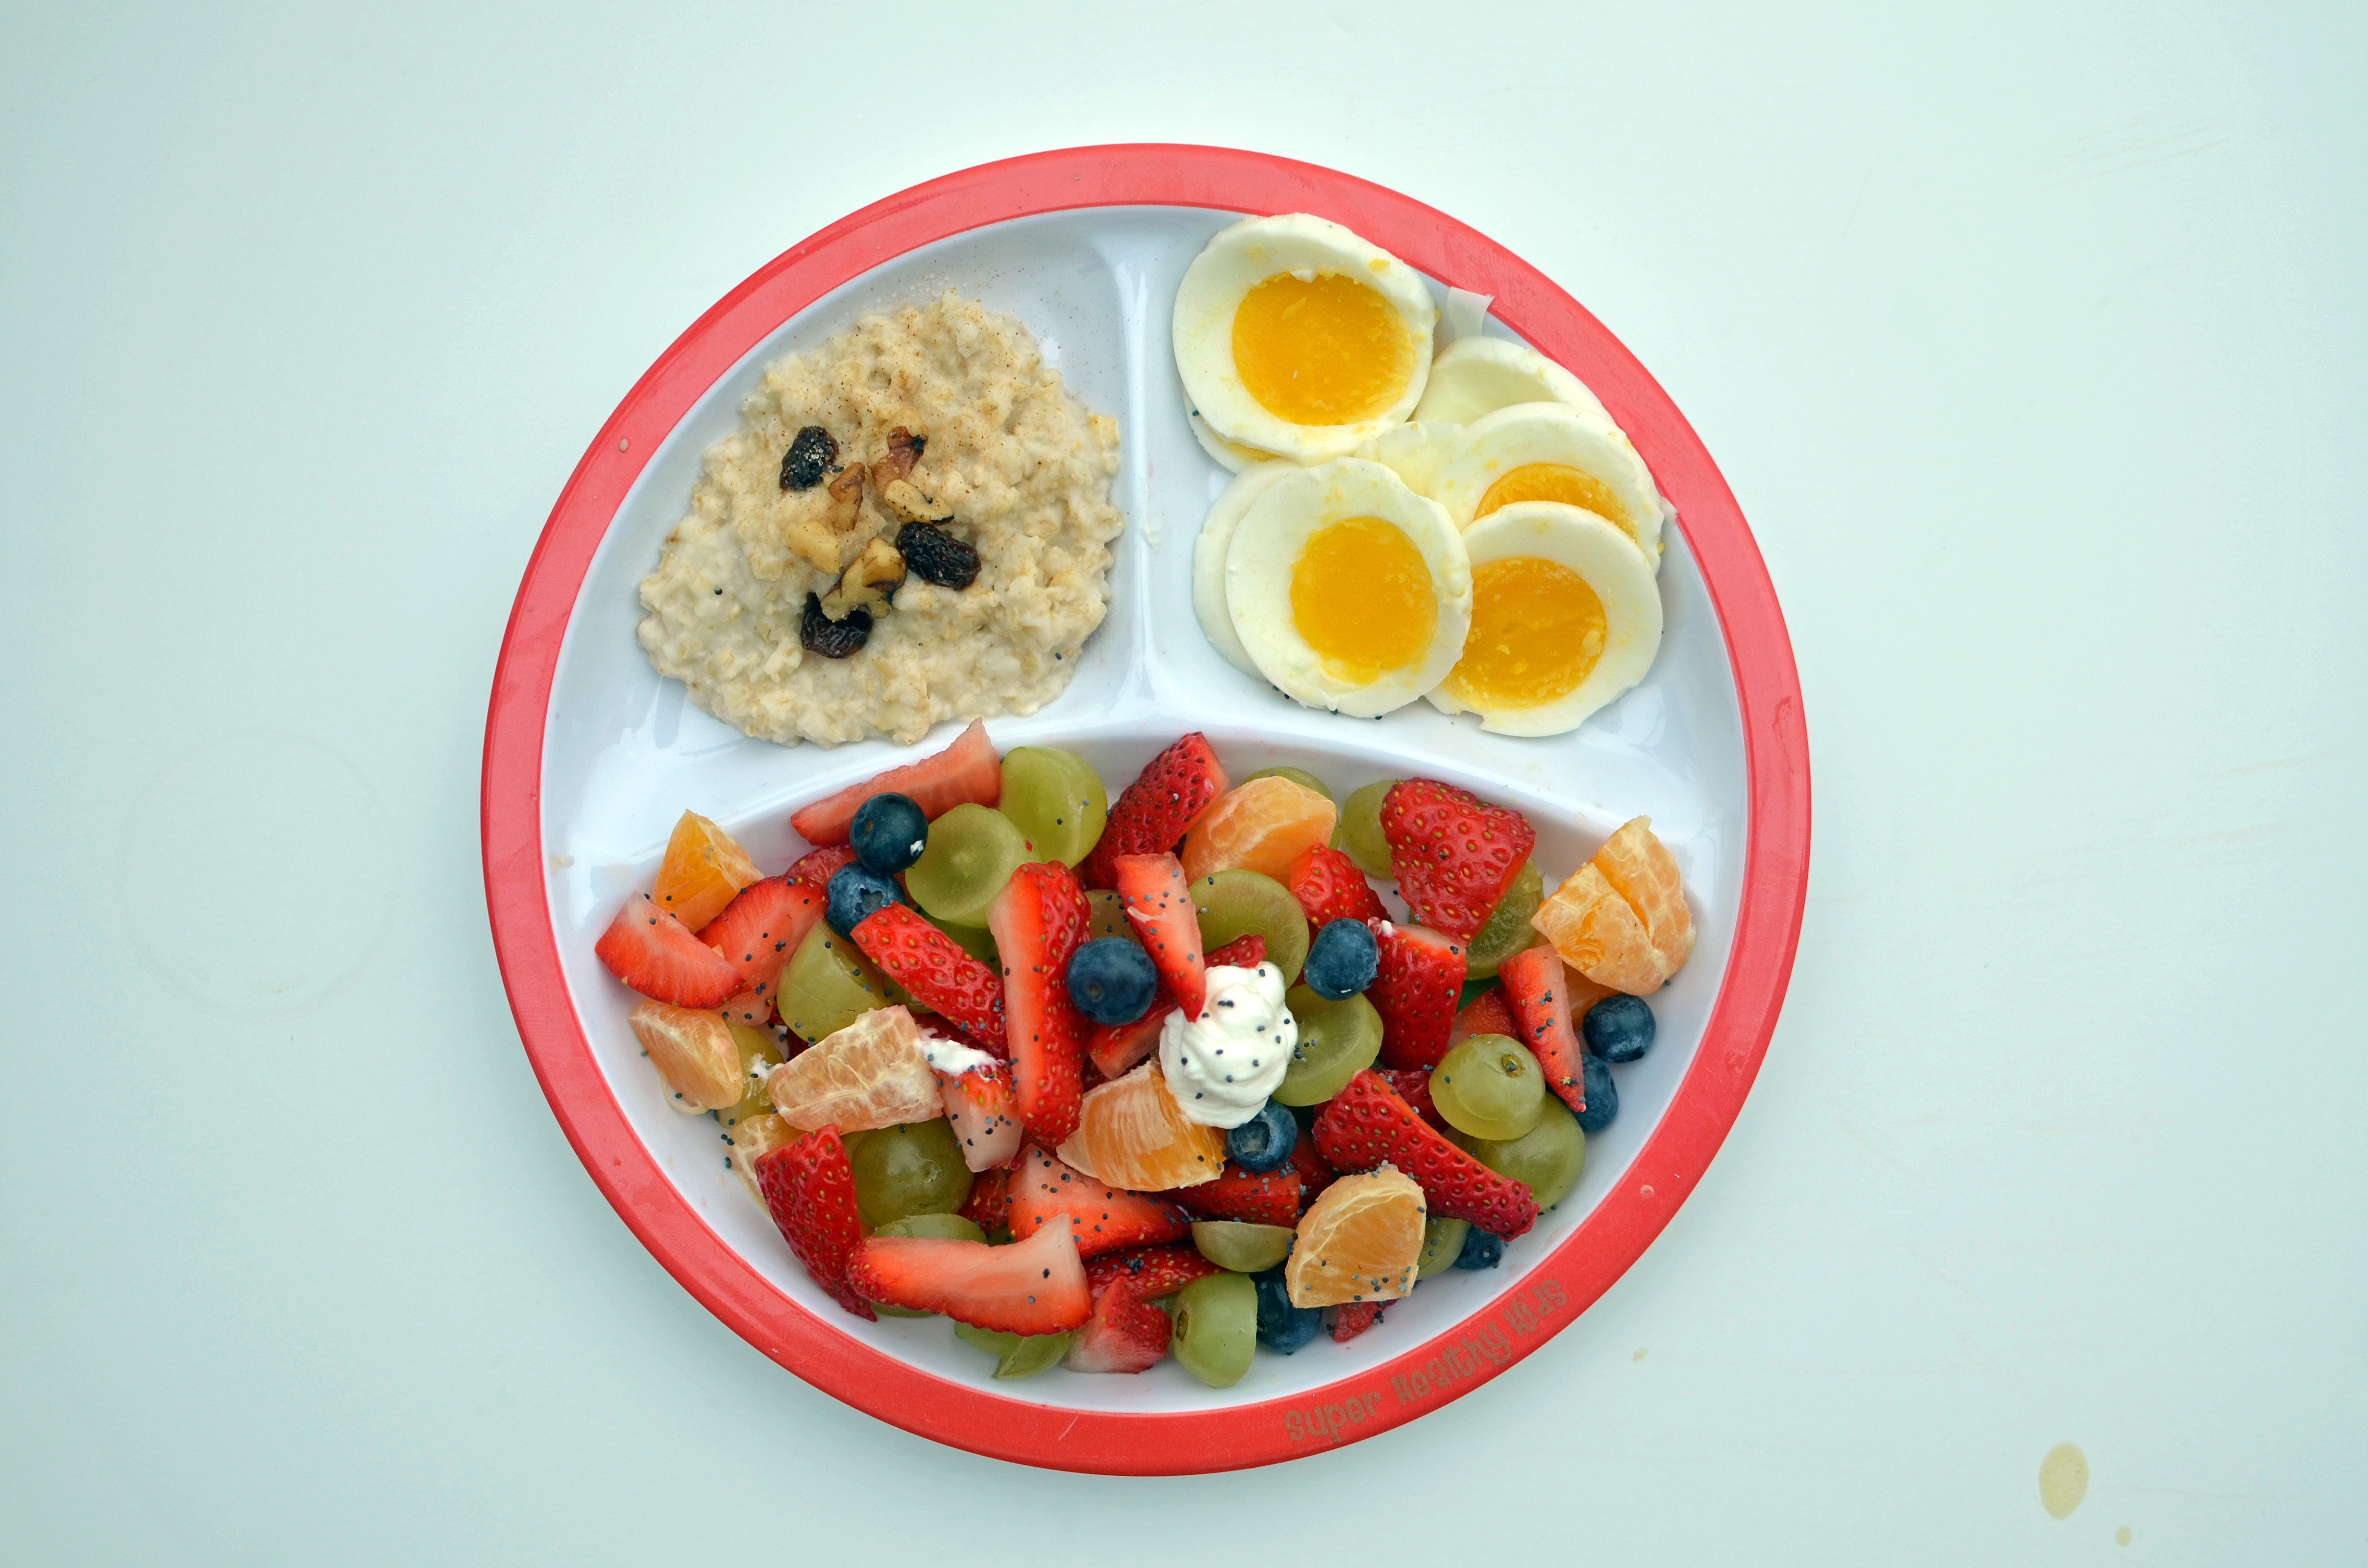 Healthy Breakfast For Kids  Why We Eat Fruit with Breakfast Every Day